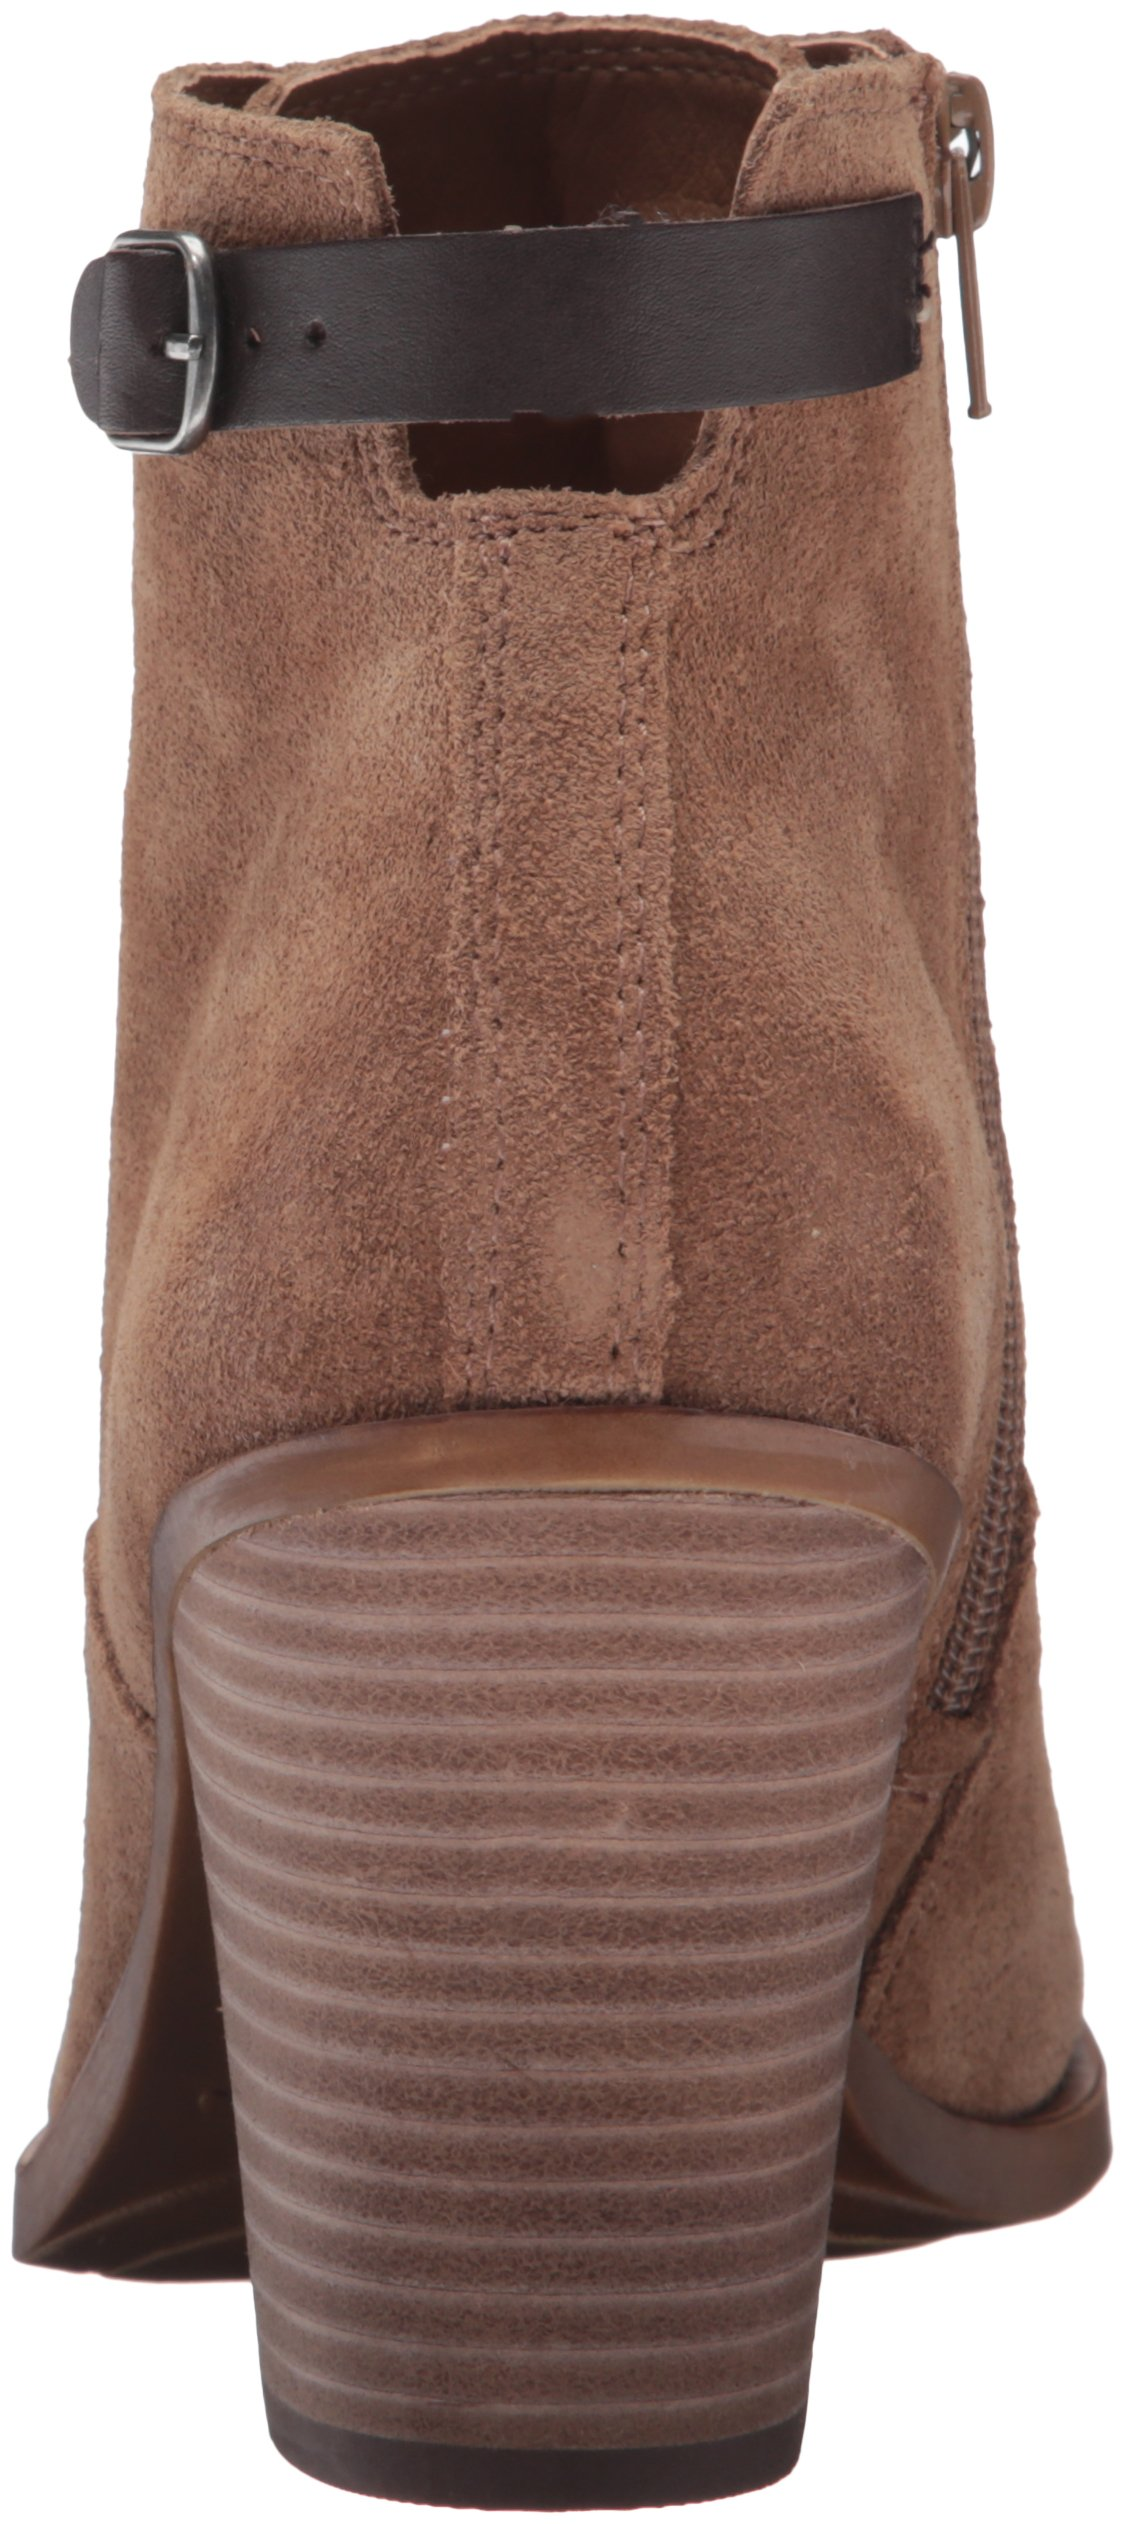 Lucky Brand Women's Echoh Ankle Bootie, Sesame, 10 M US by Lucky Brand (Image #2)